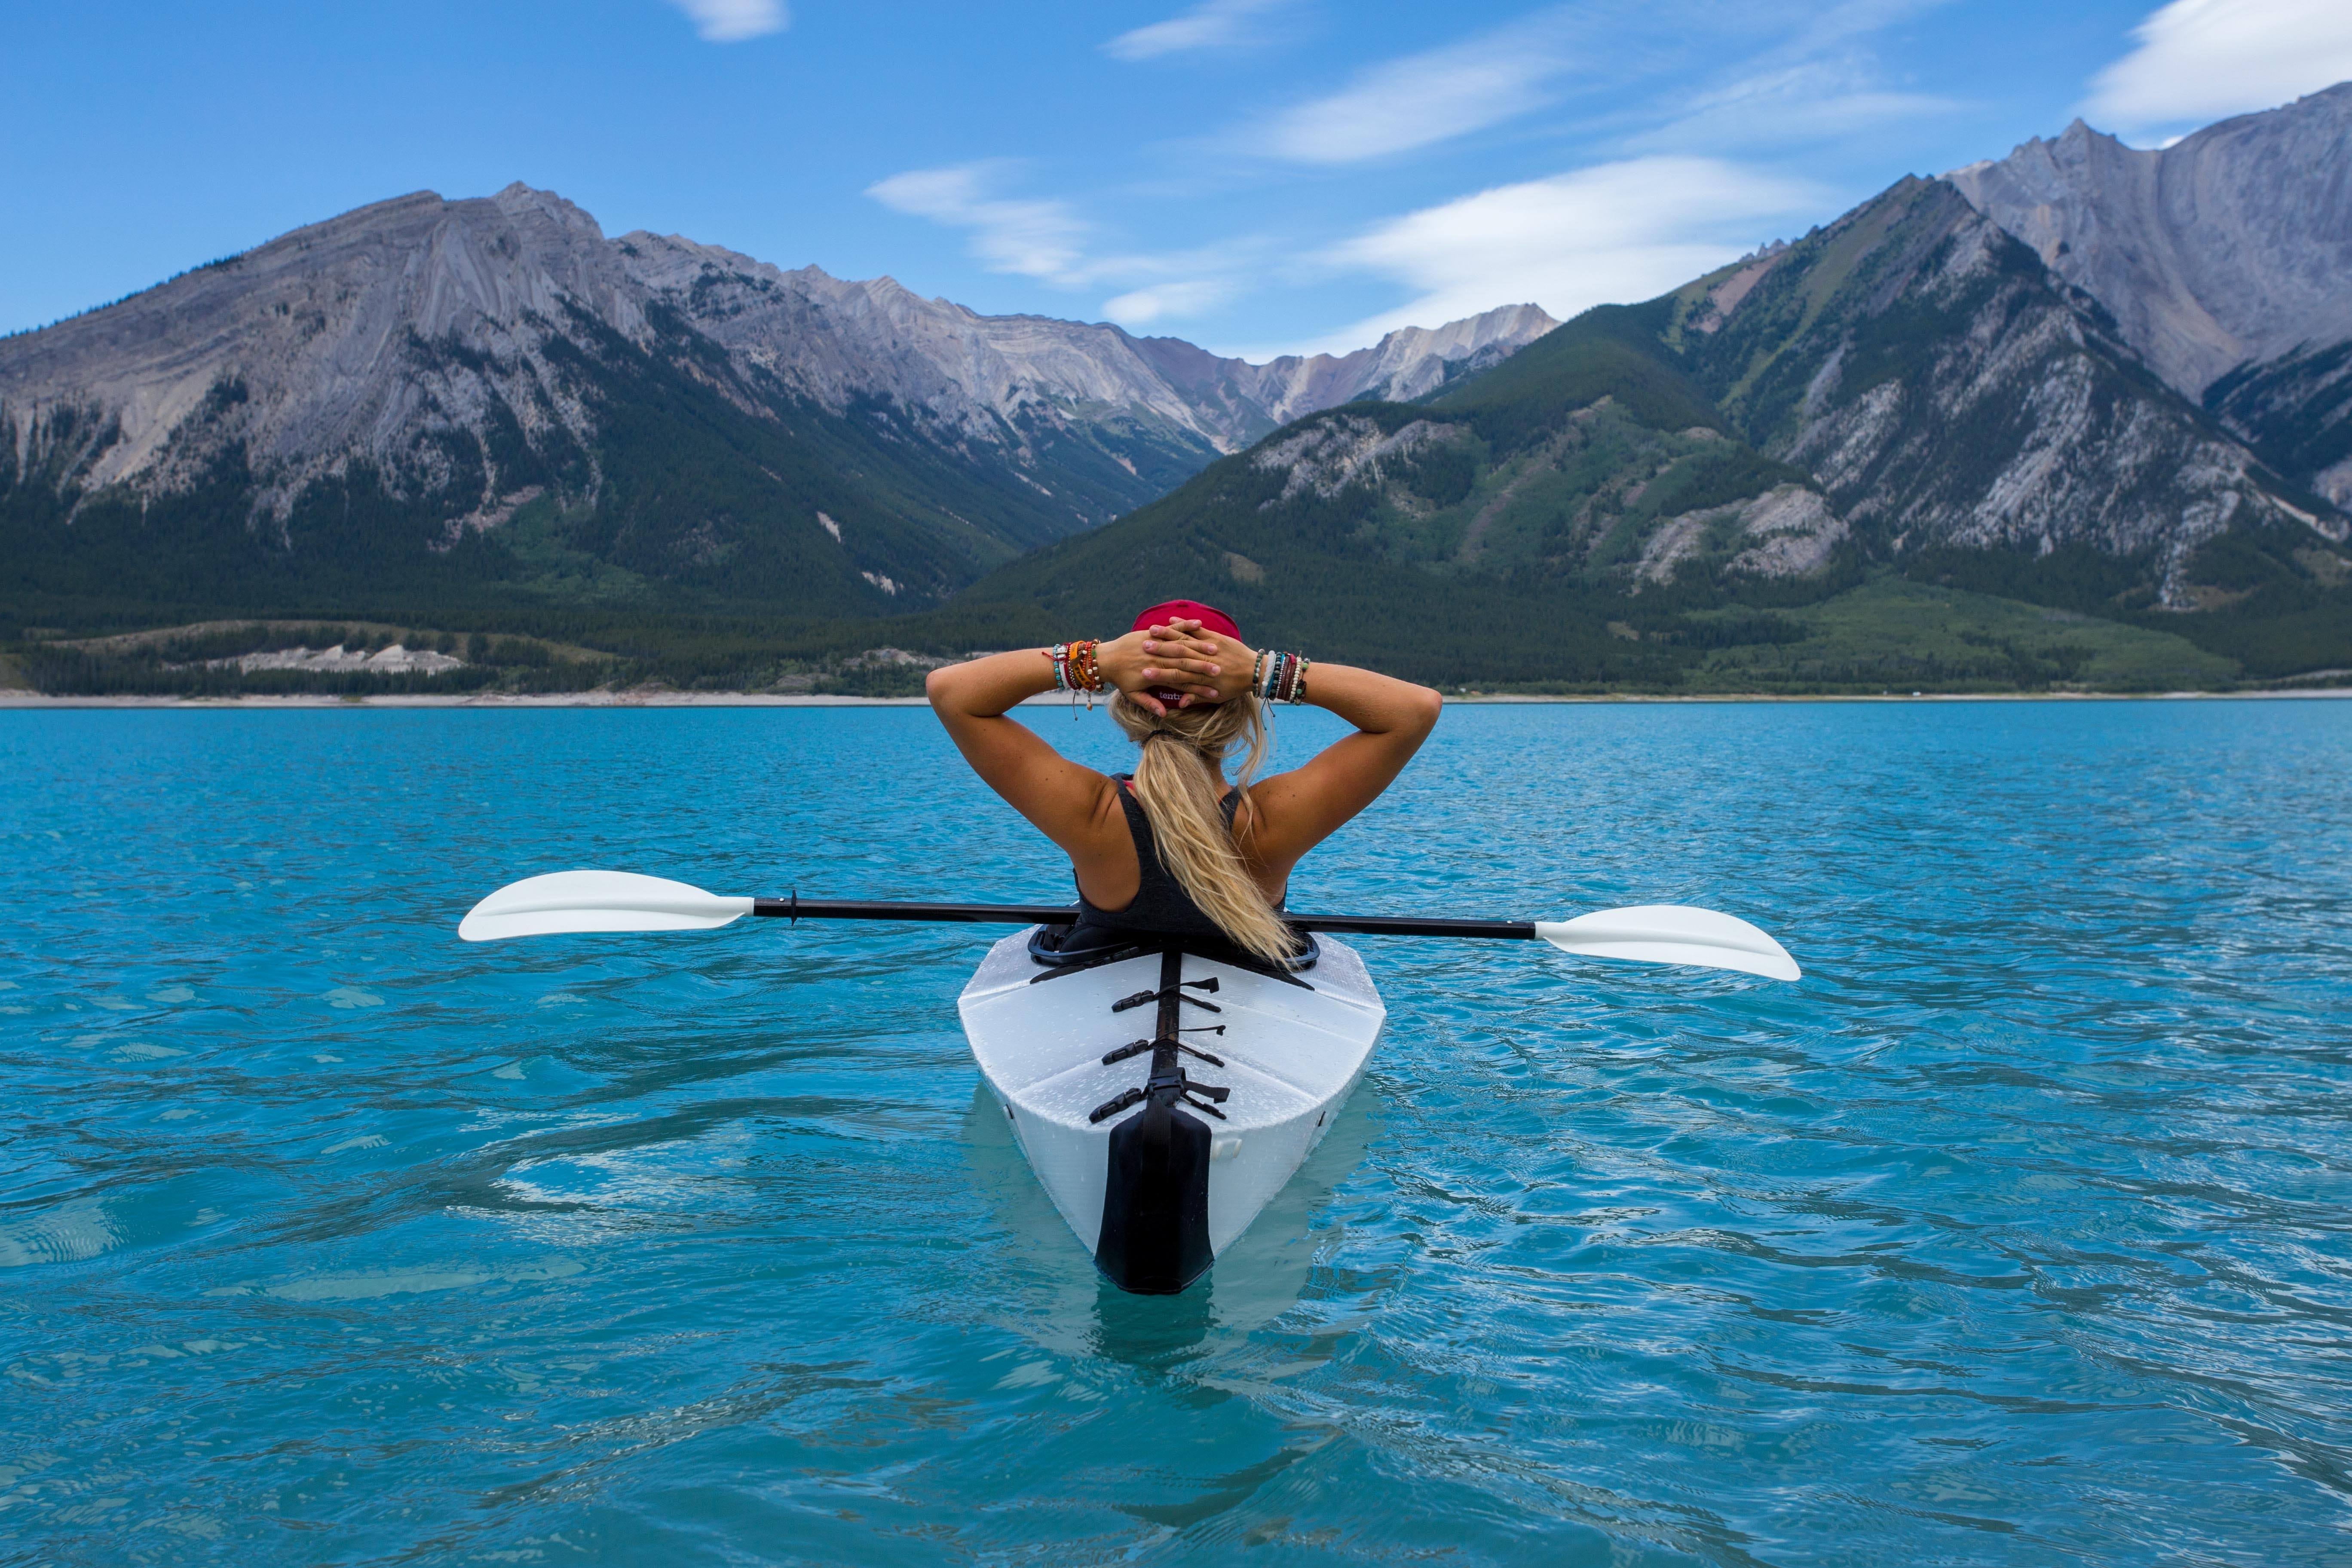 women in kayak with mountains